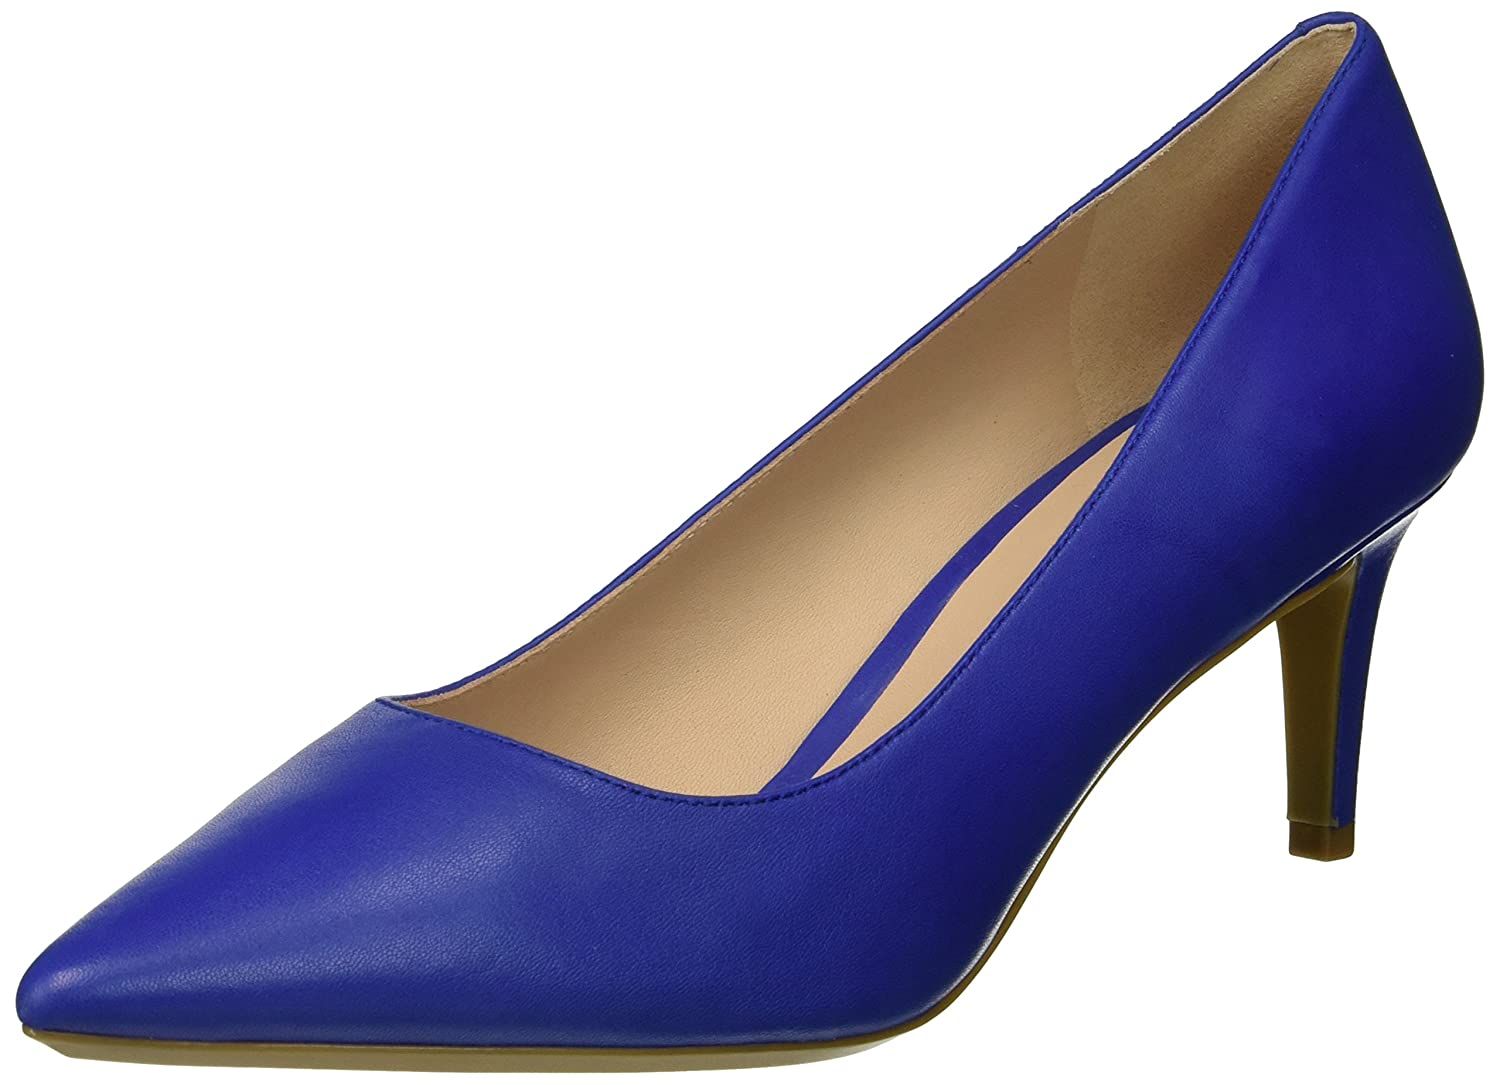 Nine West Women's SOHO9X9 Leather Pump B076FJFZ5V 9.5 B(M) US|Blue